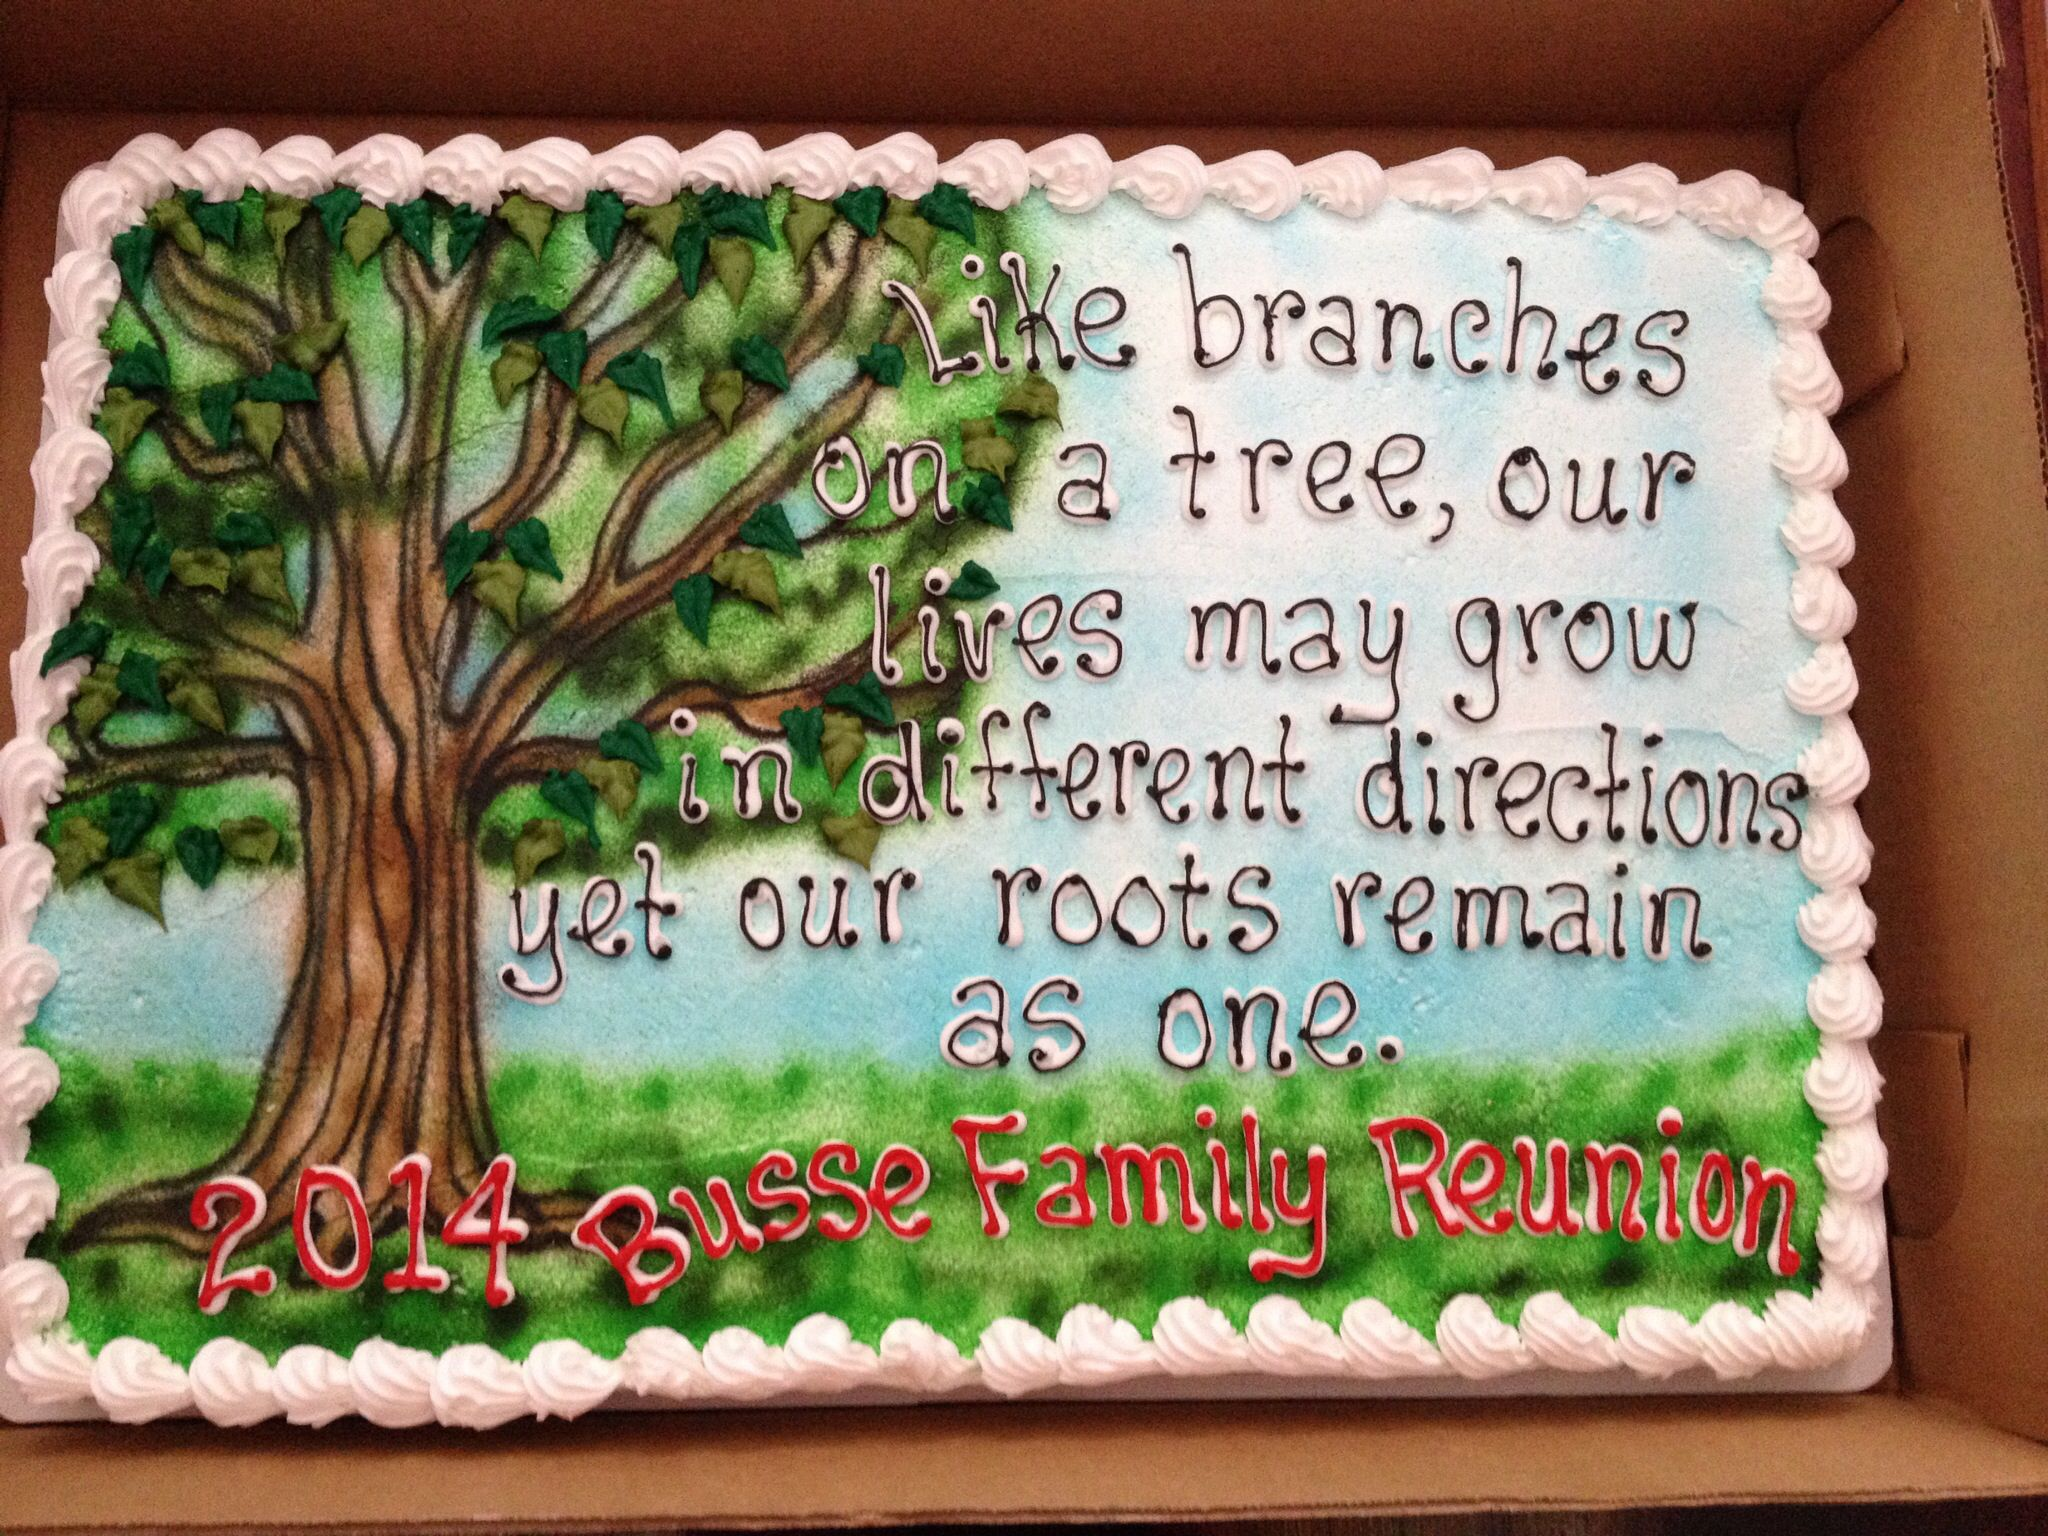 I Had This Cake Made For Our Family Reunion Love It